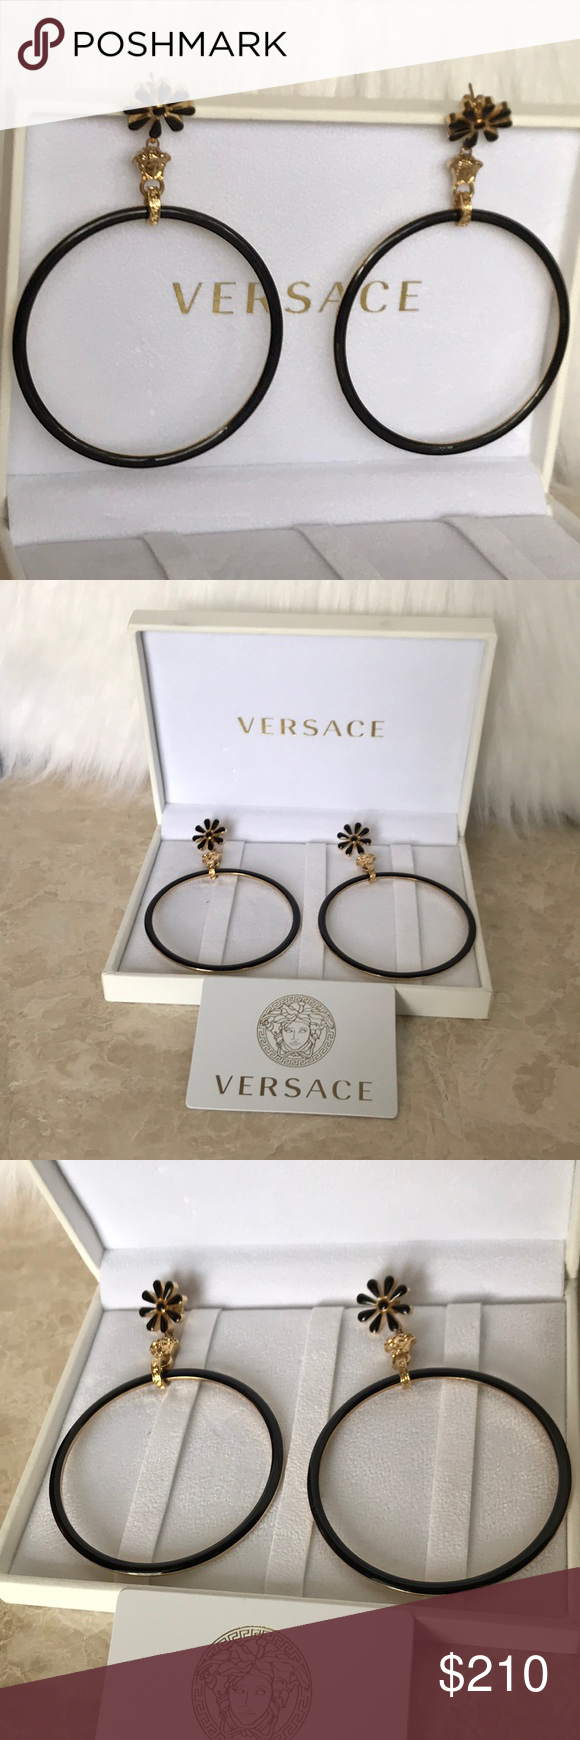 Versace earrings authentic boutique in my posh closet